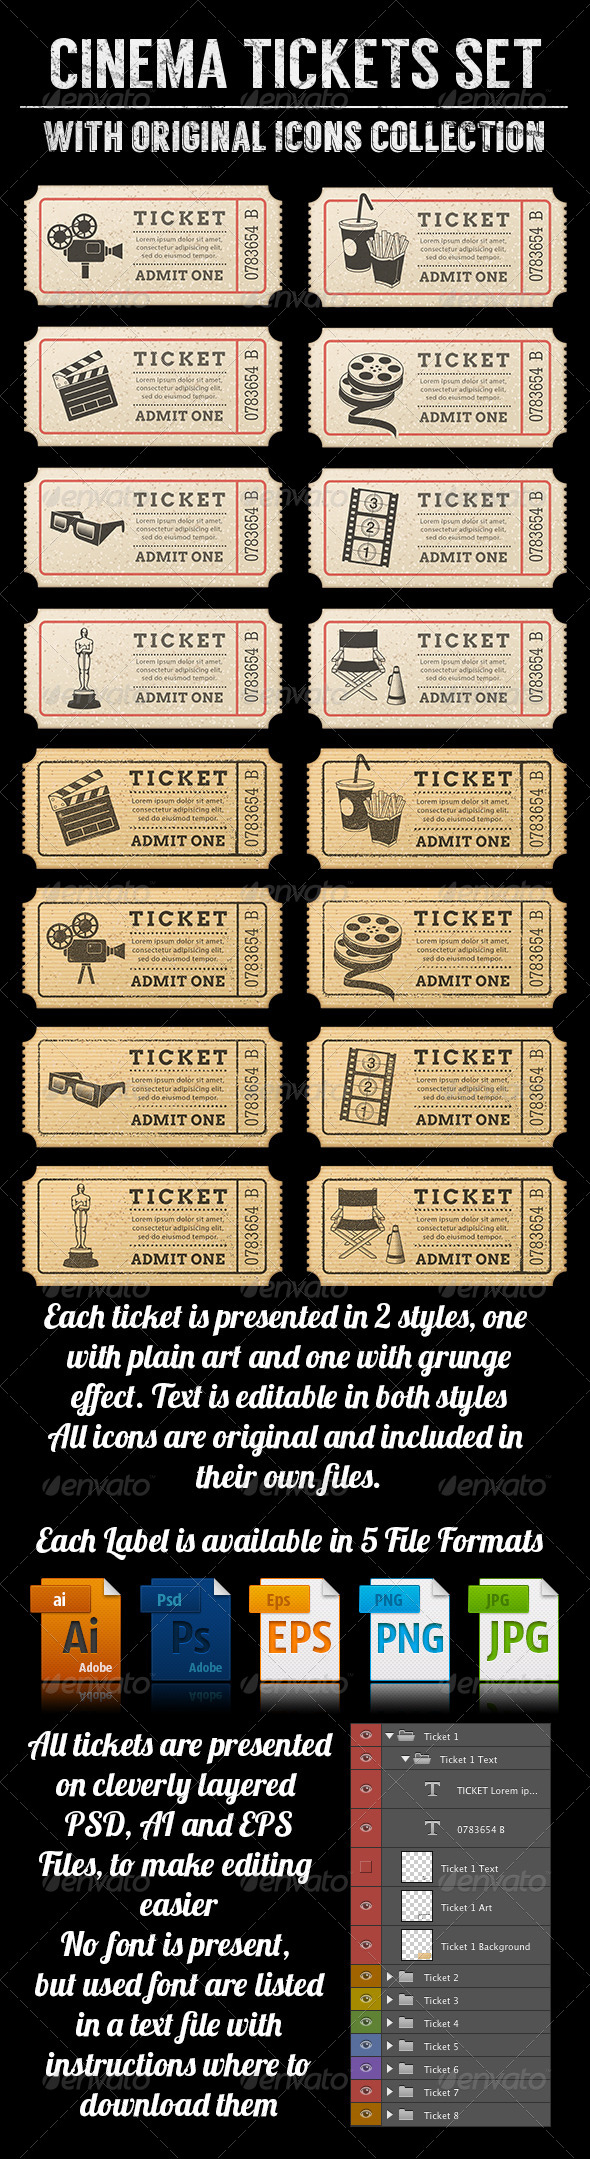 cinema_tickets_templates_7864831